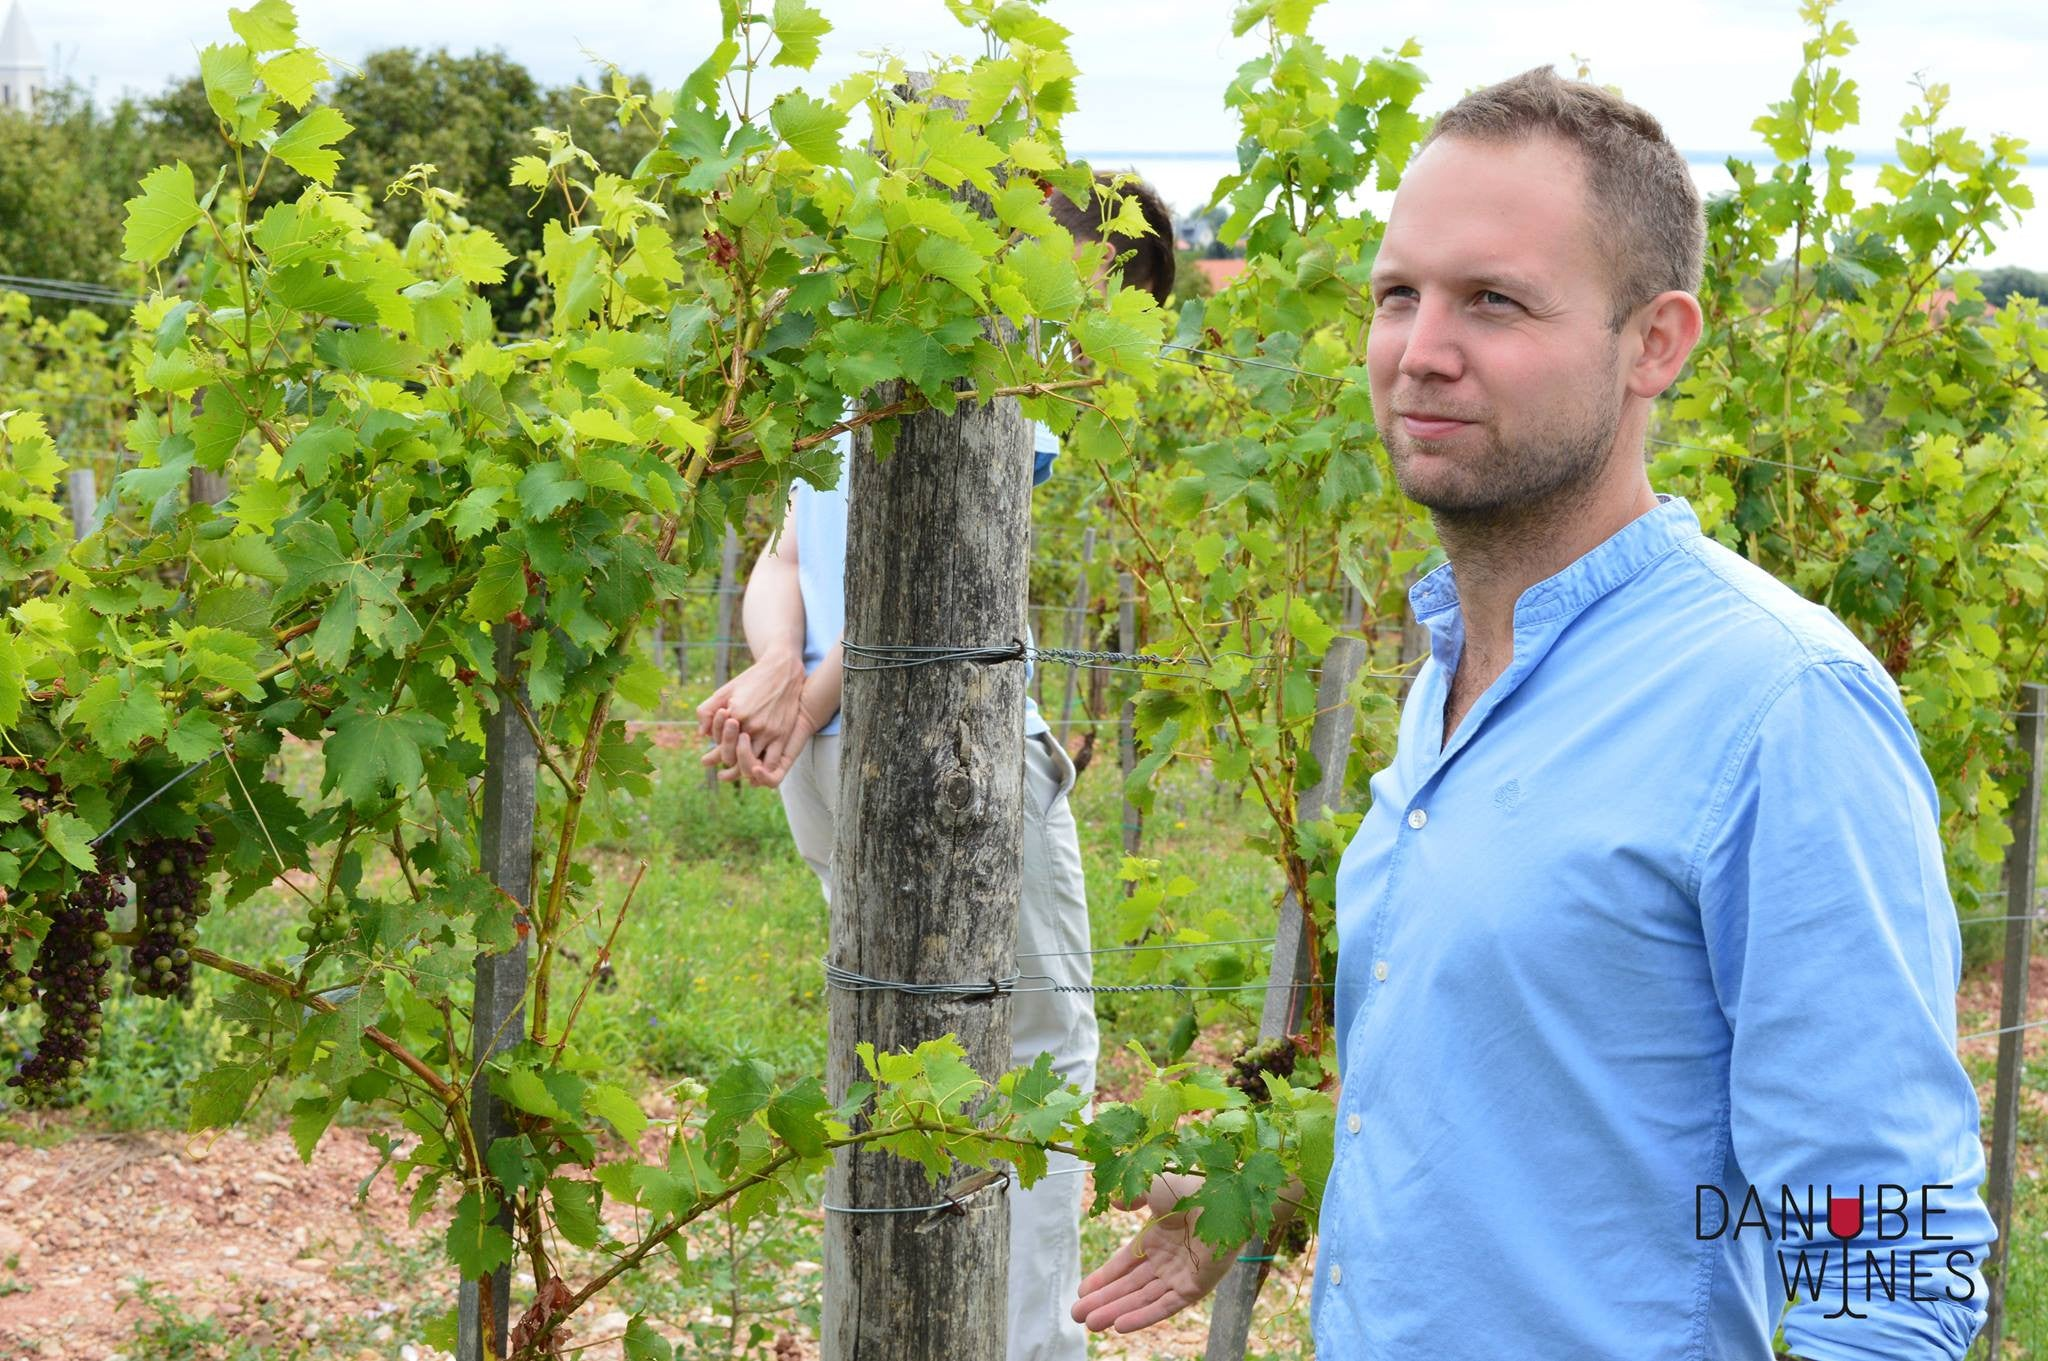 Interview with Tamas Kovacs, owner of St Donat Wine Estate in Csopak